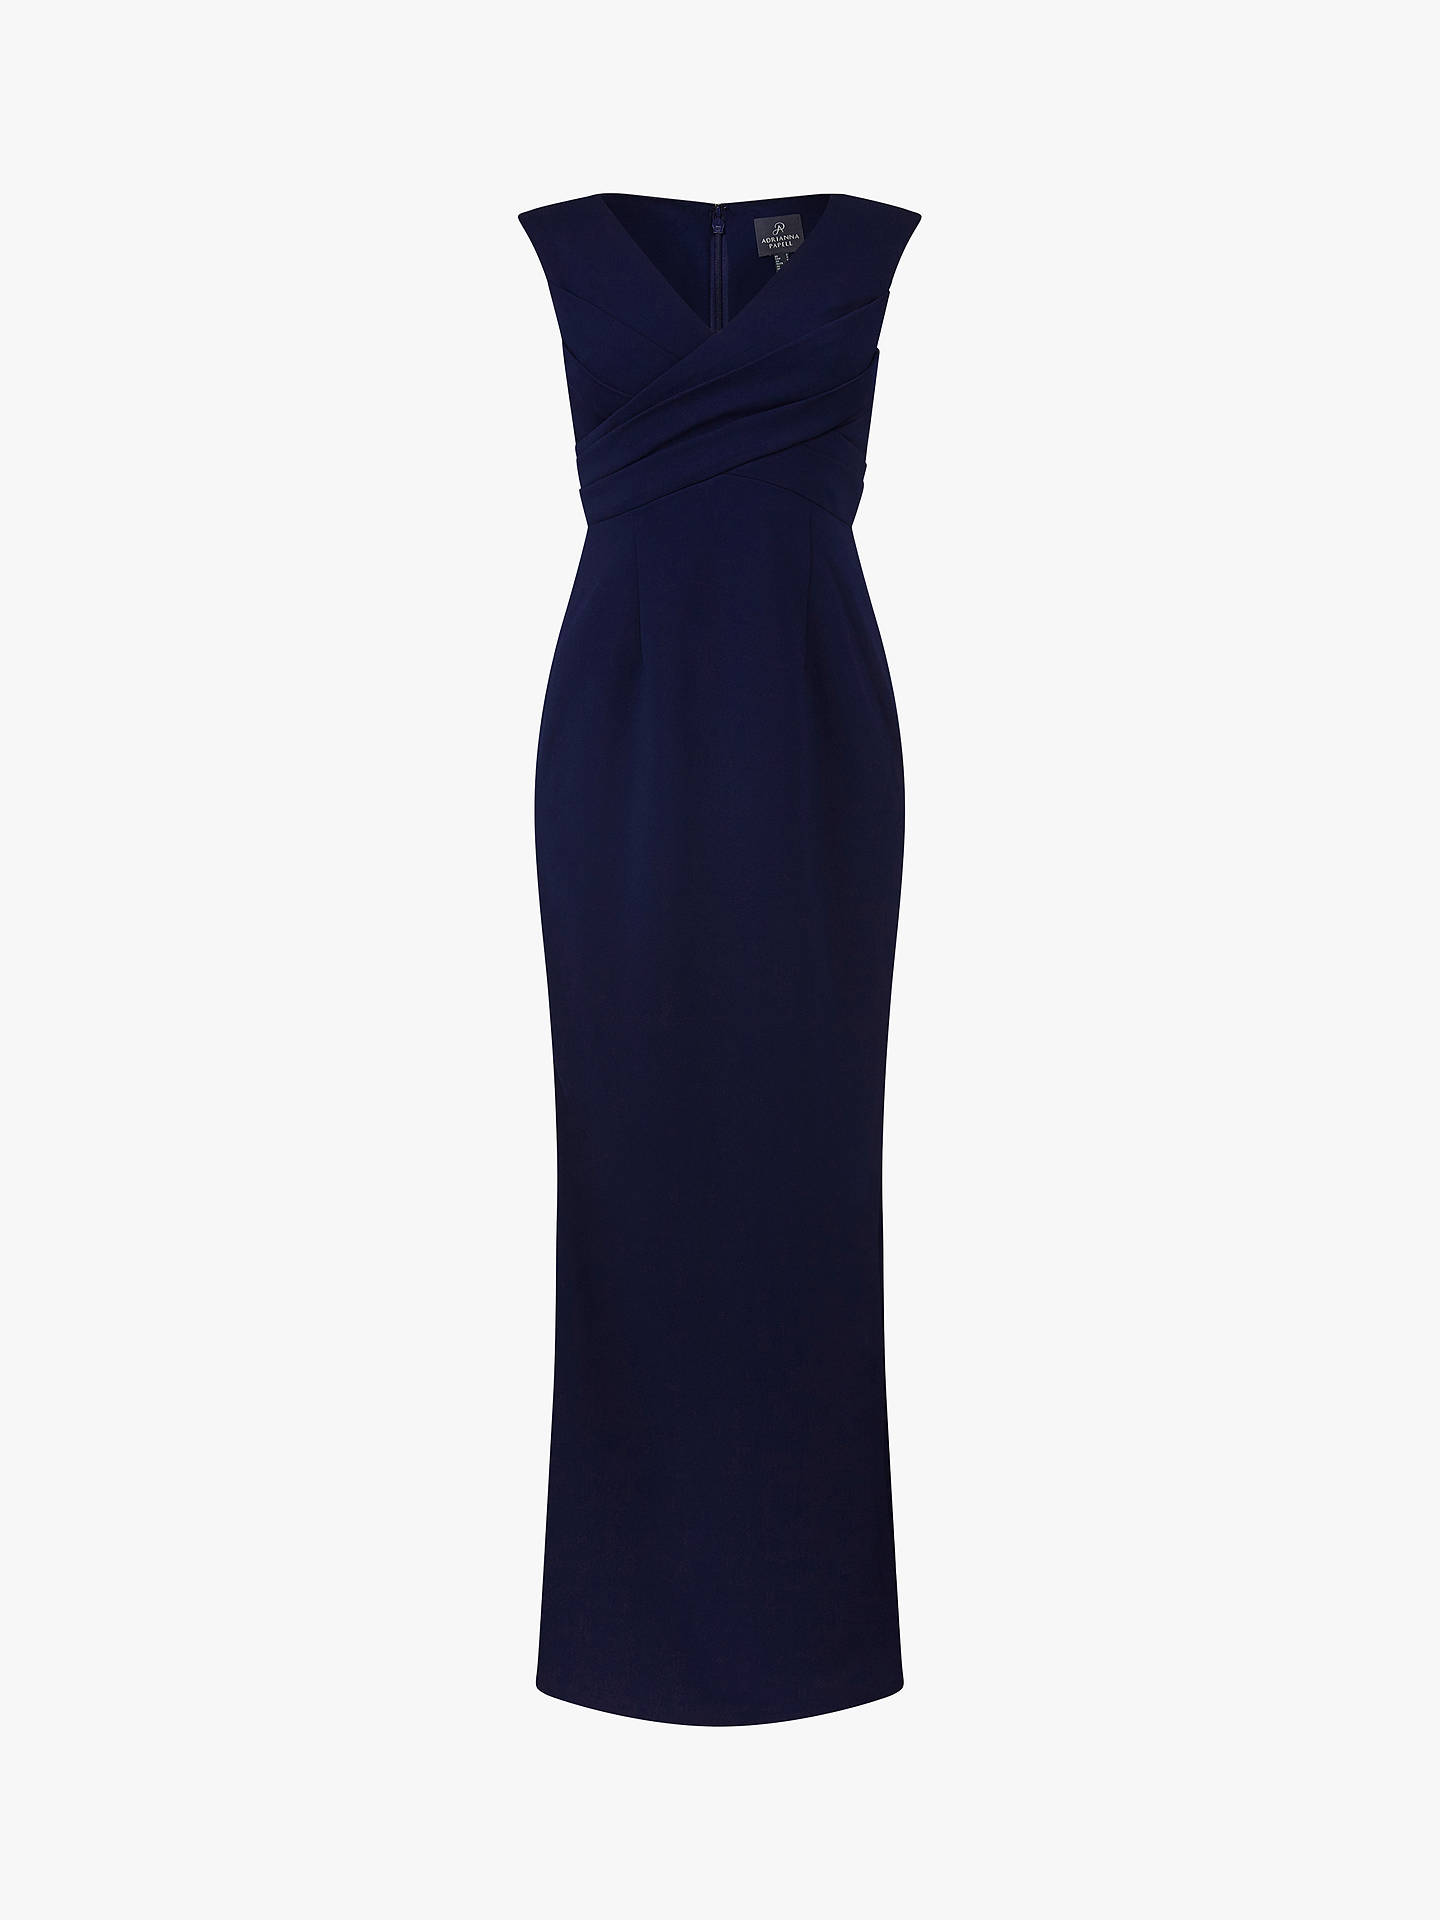 Buy Adrianna Papell Long Crepe Sleeveless V-Neck Dress, Midnight, 6 Online at johnlewis.com